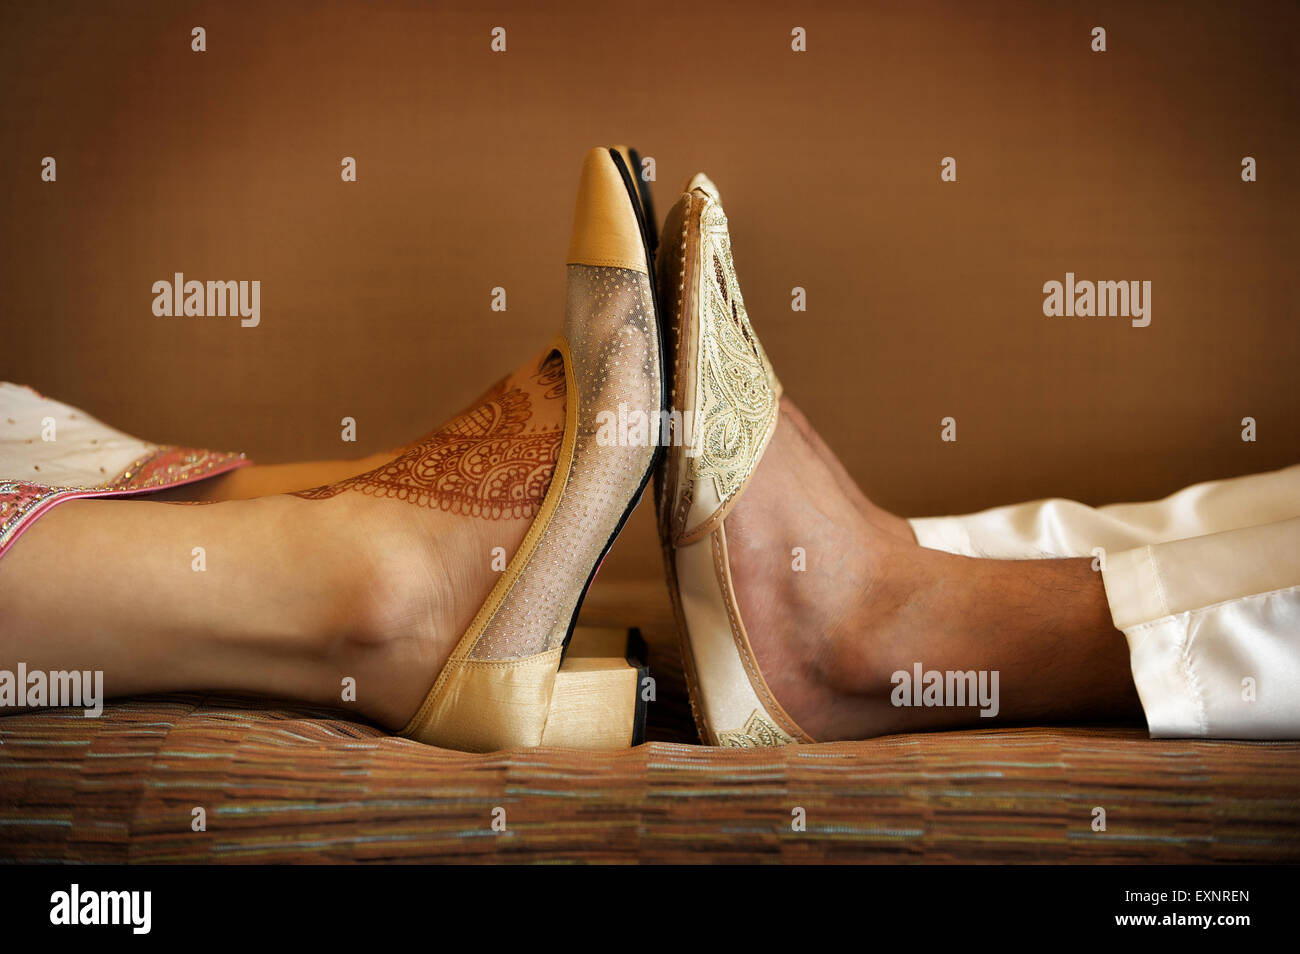 Image of Indian bride and groom's wedding shoes with feet touching - Stock Image